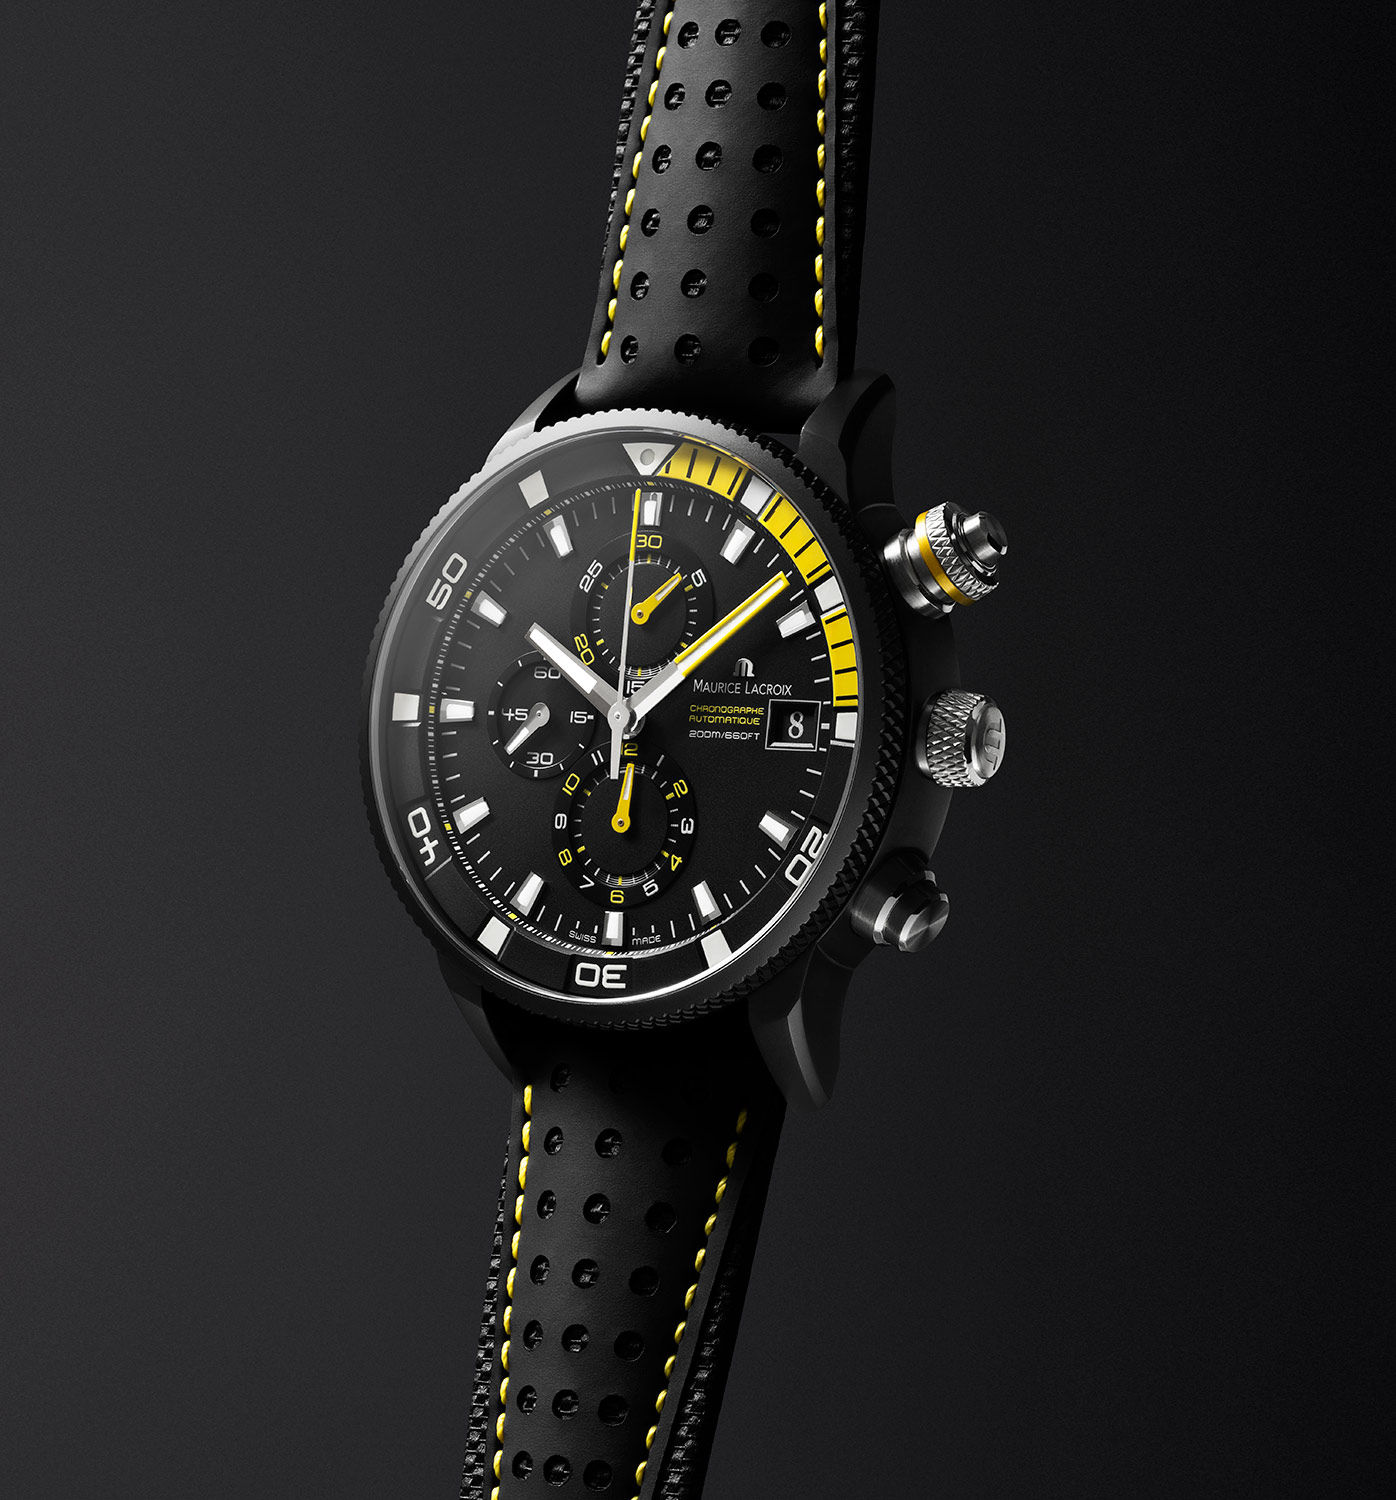 tom-medvedich-still-life-jewelry-watches-maurice-lacroix-01b.jpg